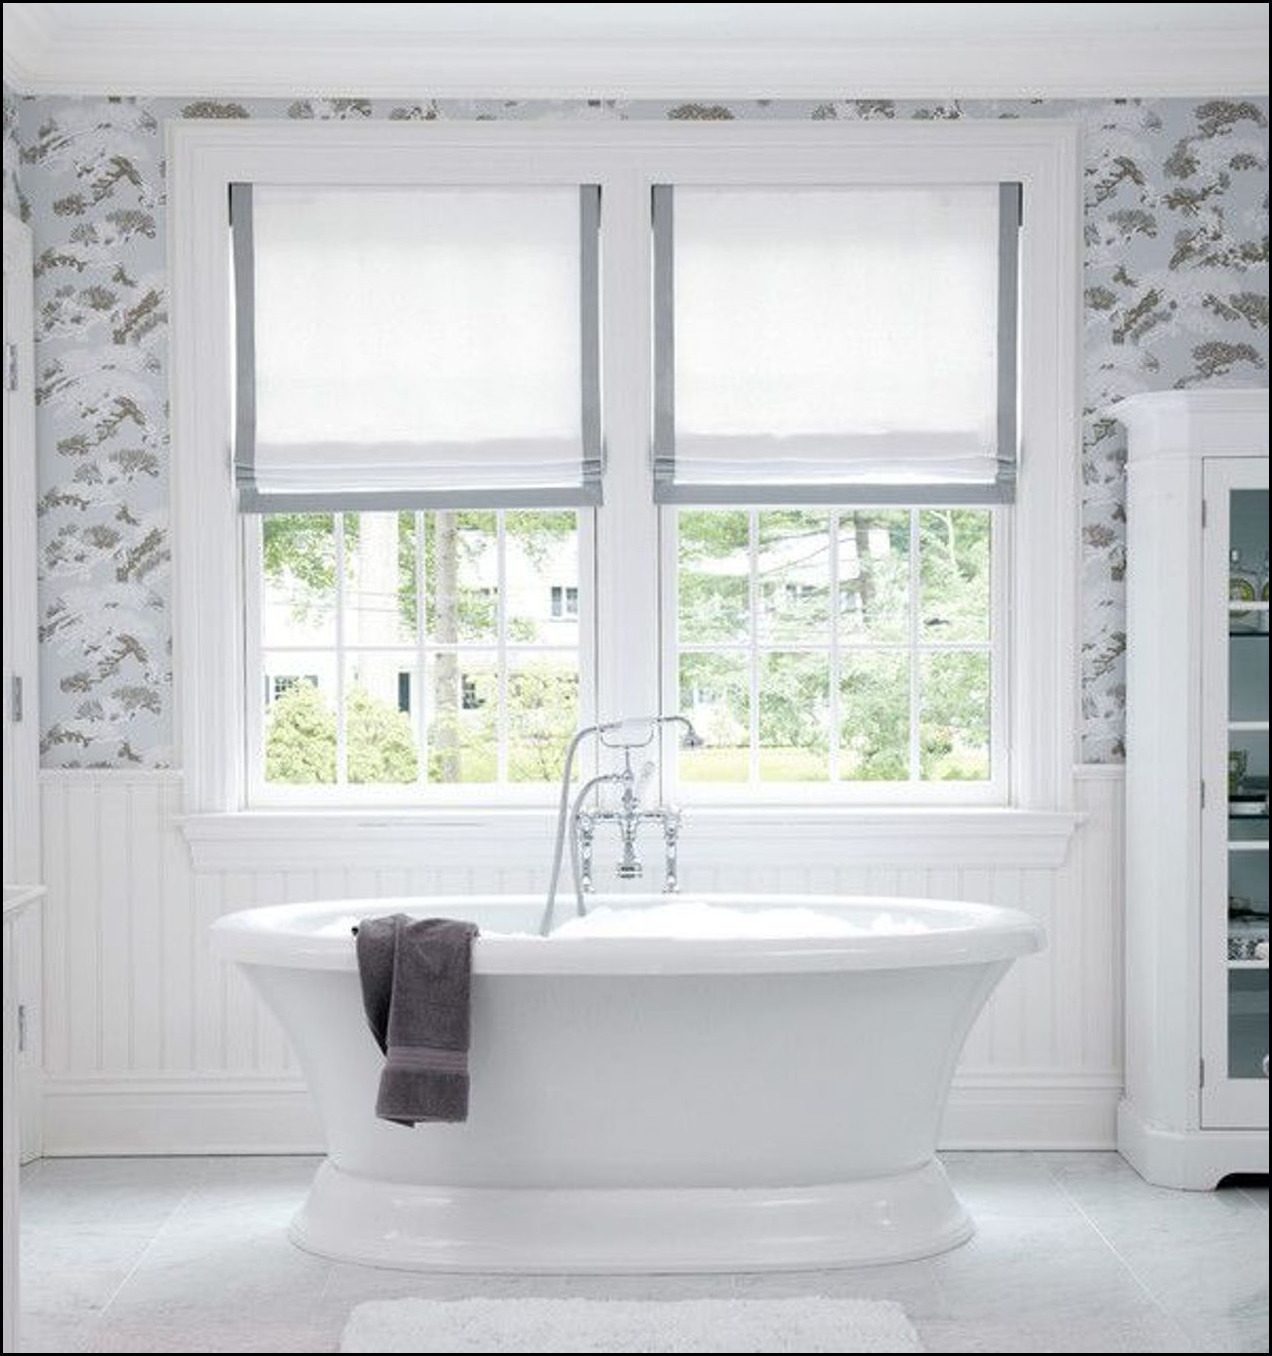 Simply Because Of The Bathroom Window Dressing Ideas Had A Lot Other Photographs Are Ociated To Then You Can Opt For It In Gallery Beneath